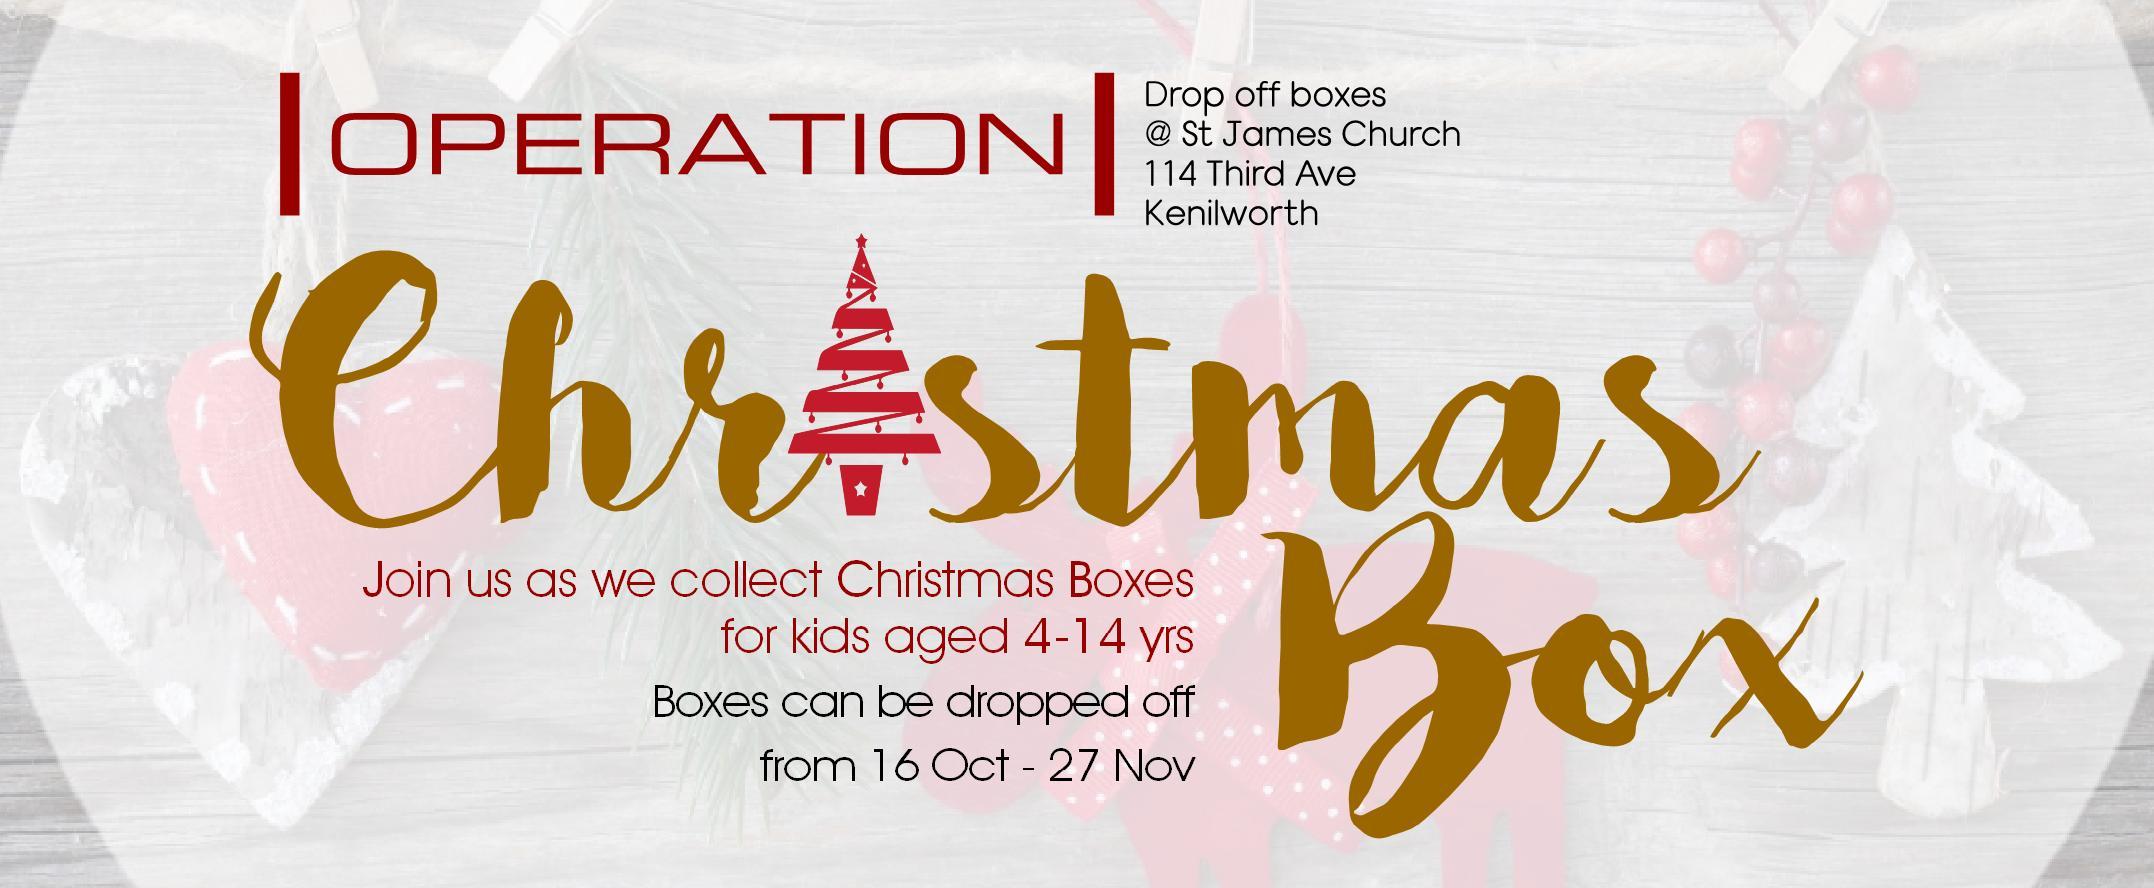 2016 Rotator Operation Christmas Box